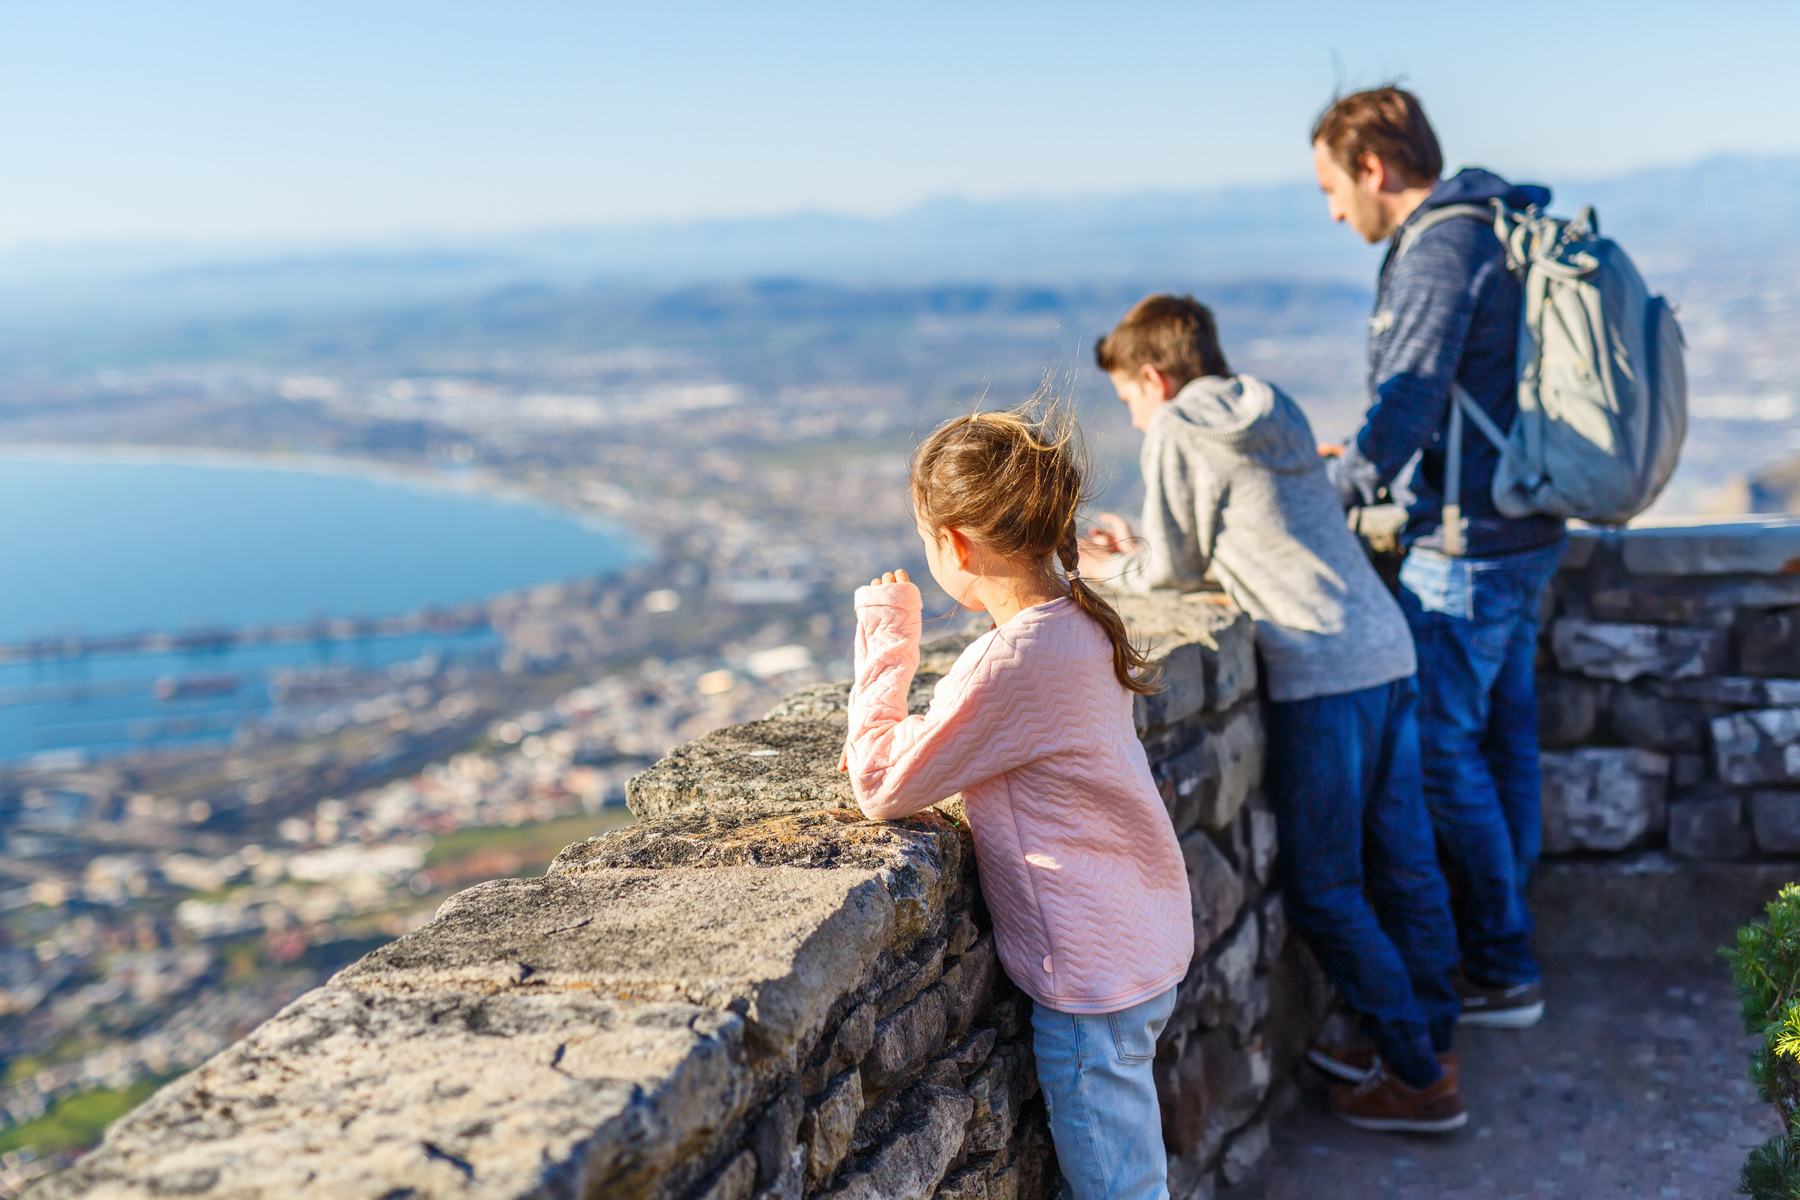 A family traveling in Cape Town